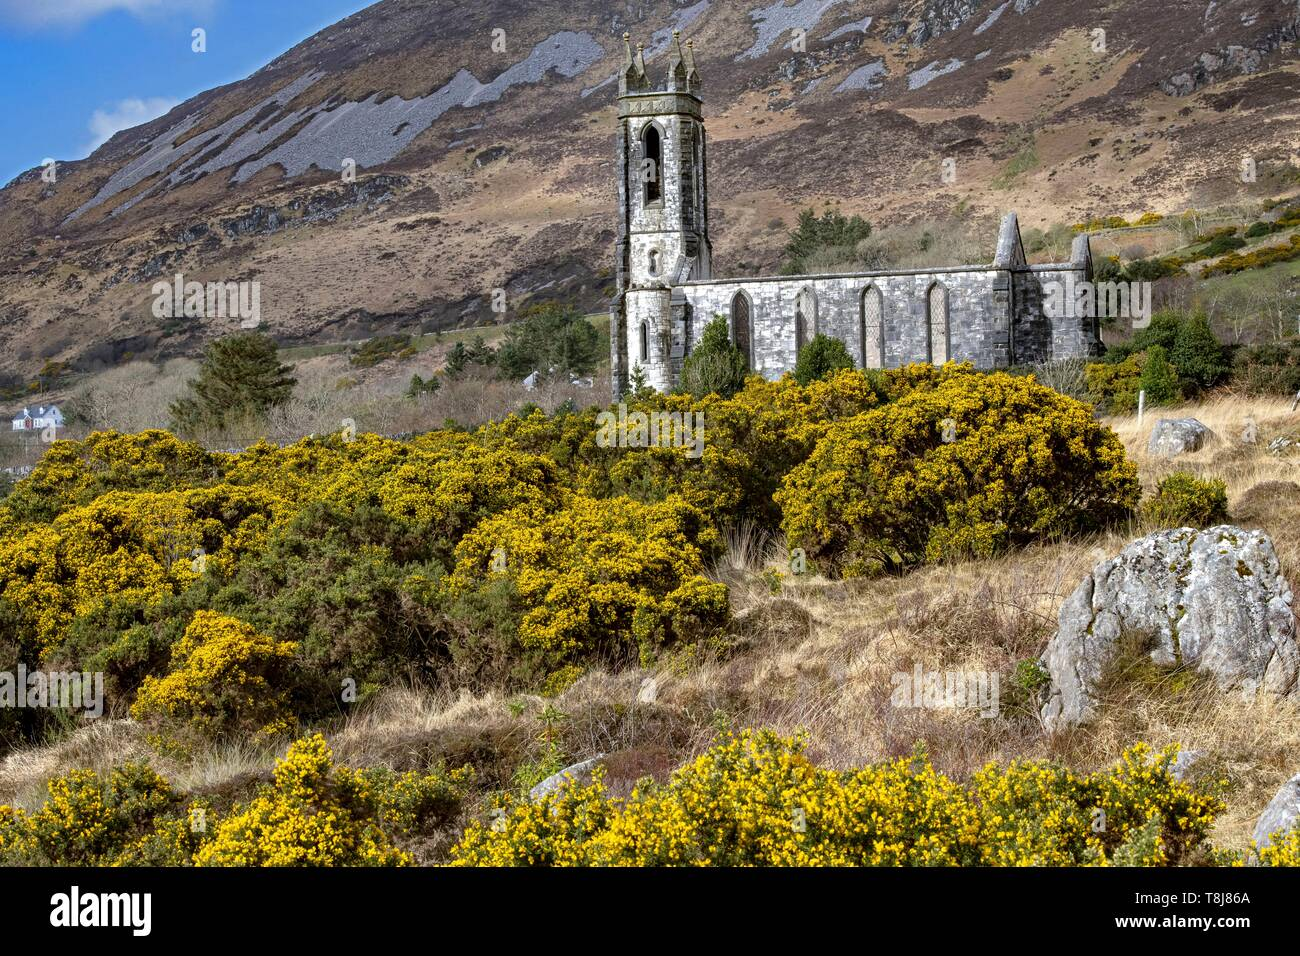 Ireland, County Donegal, Dunlewy, the 1840 abandoned church at the foot of Mount Erigal in the Glenveagh National Park - Stock Image